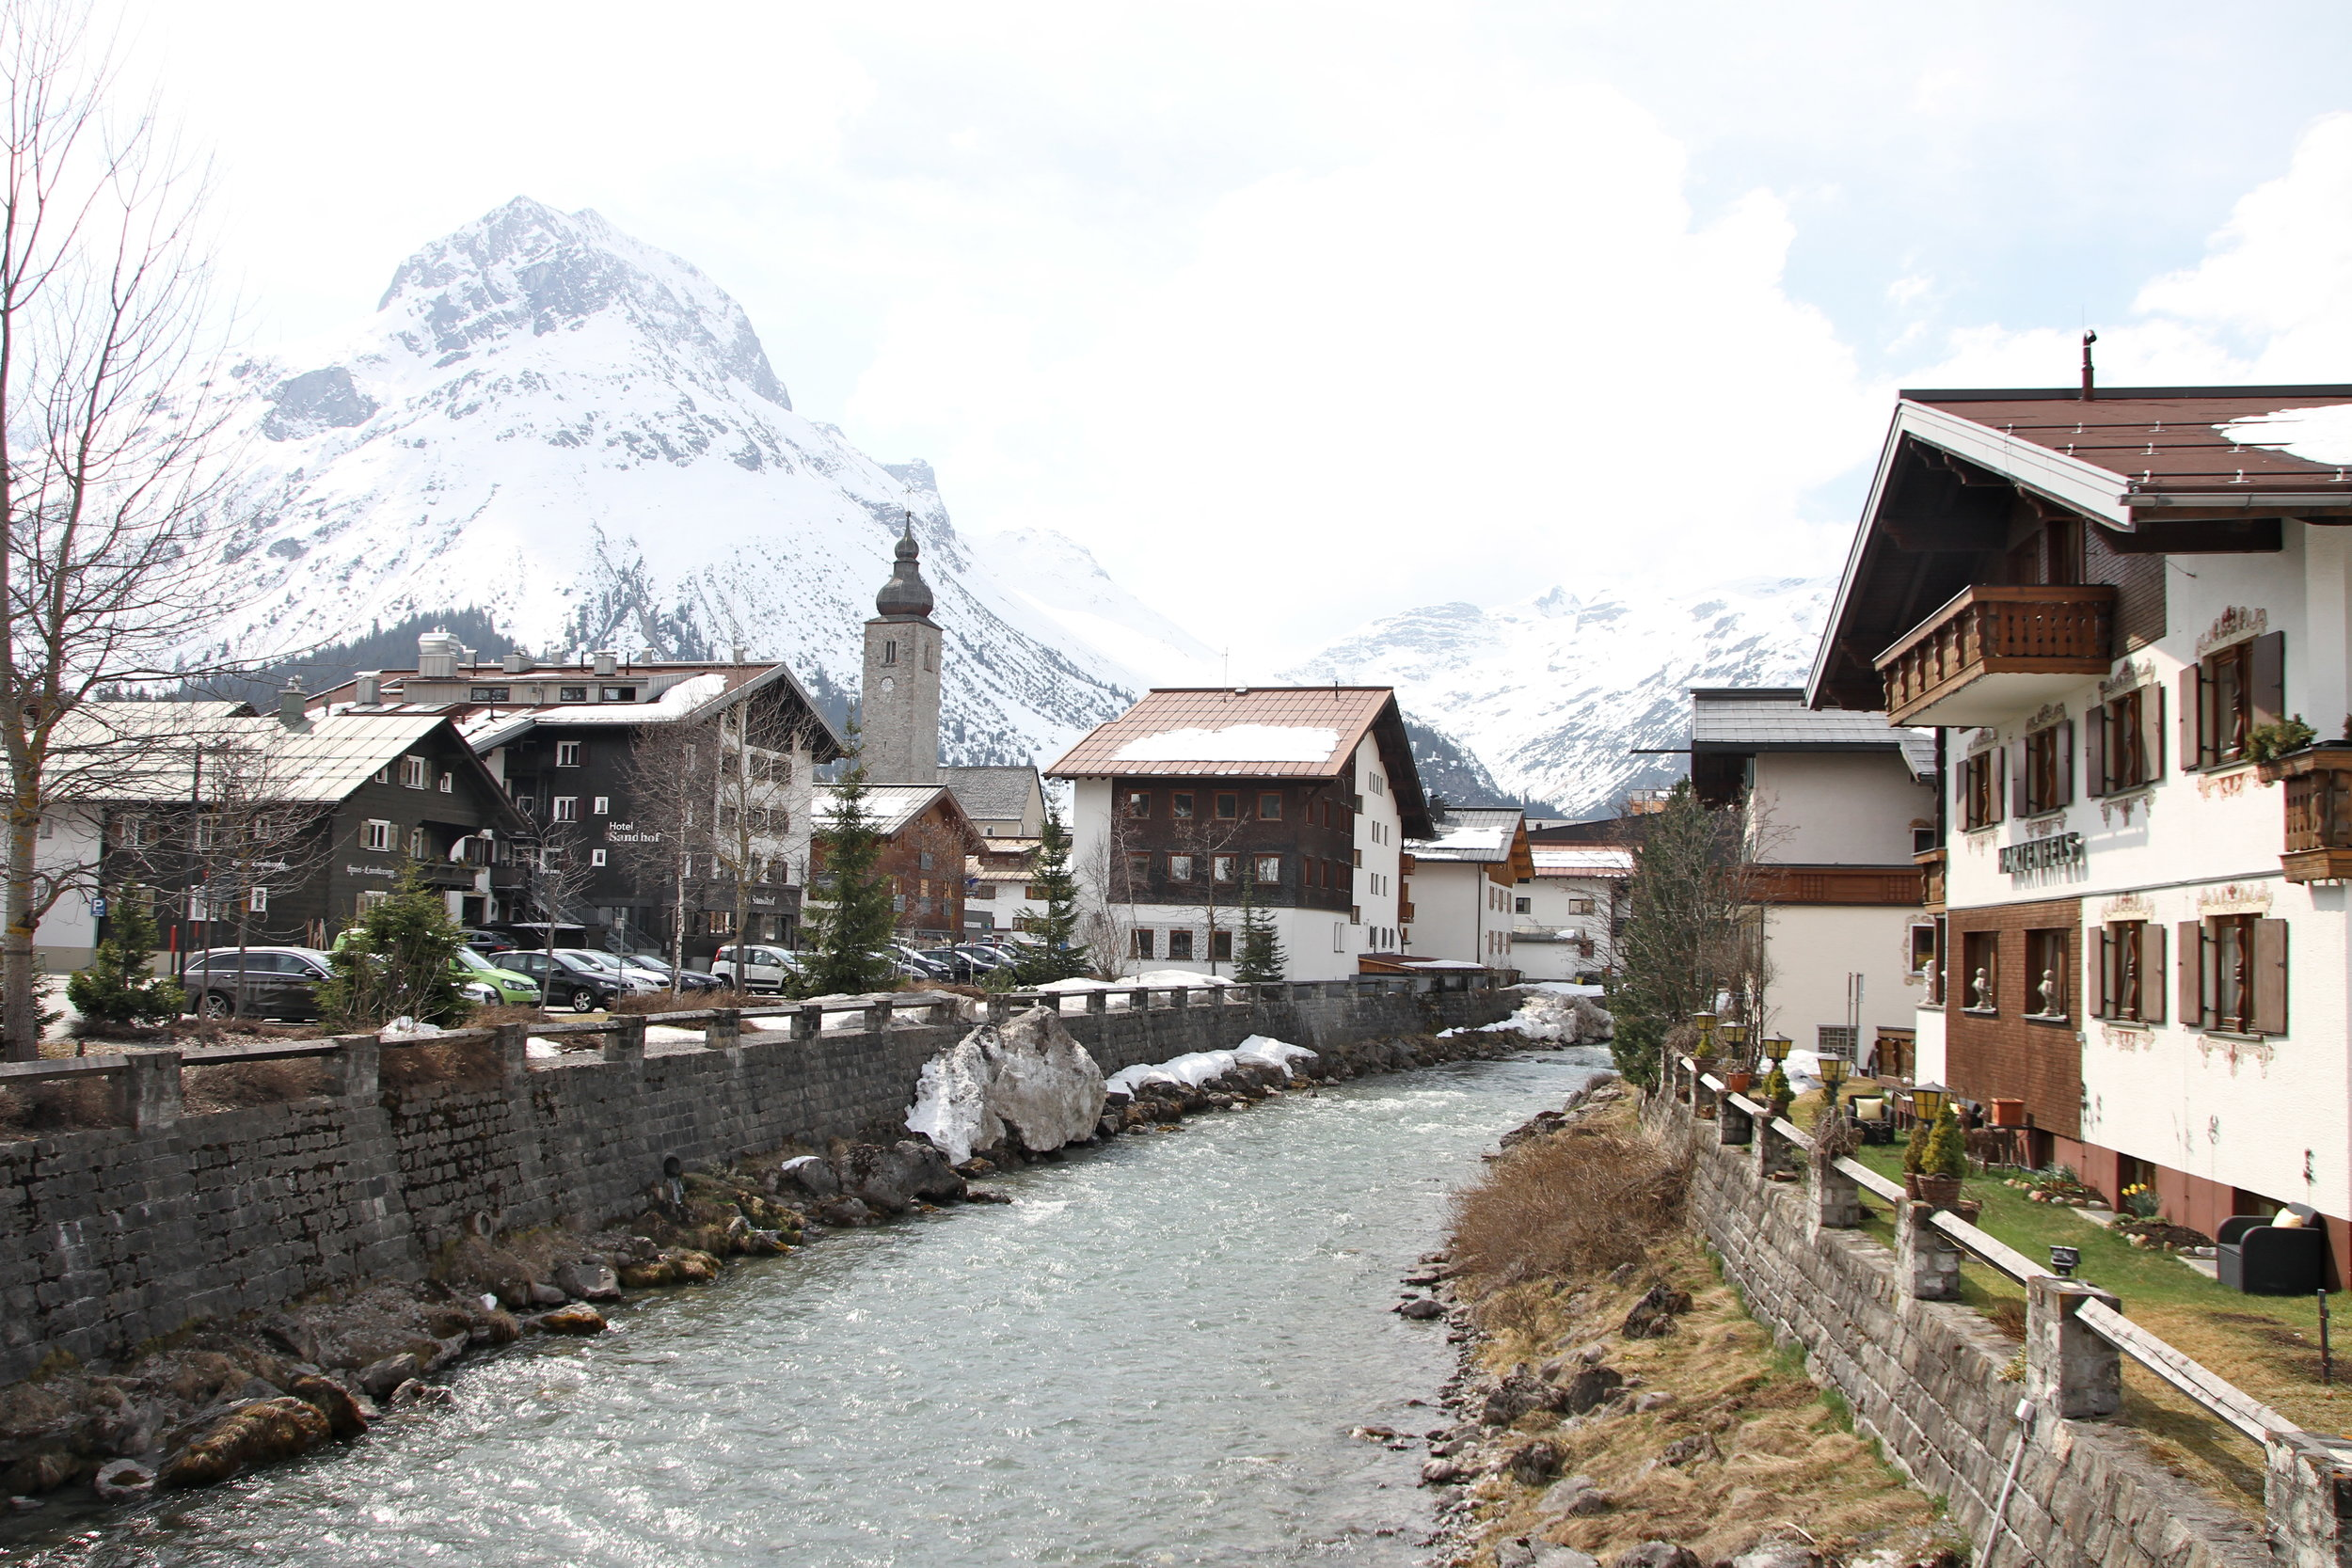 The pretty village of Lech, Austria.